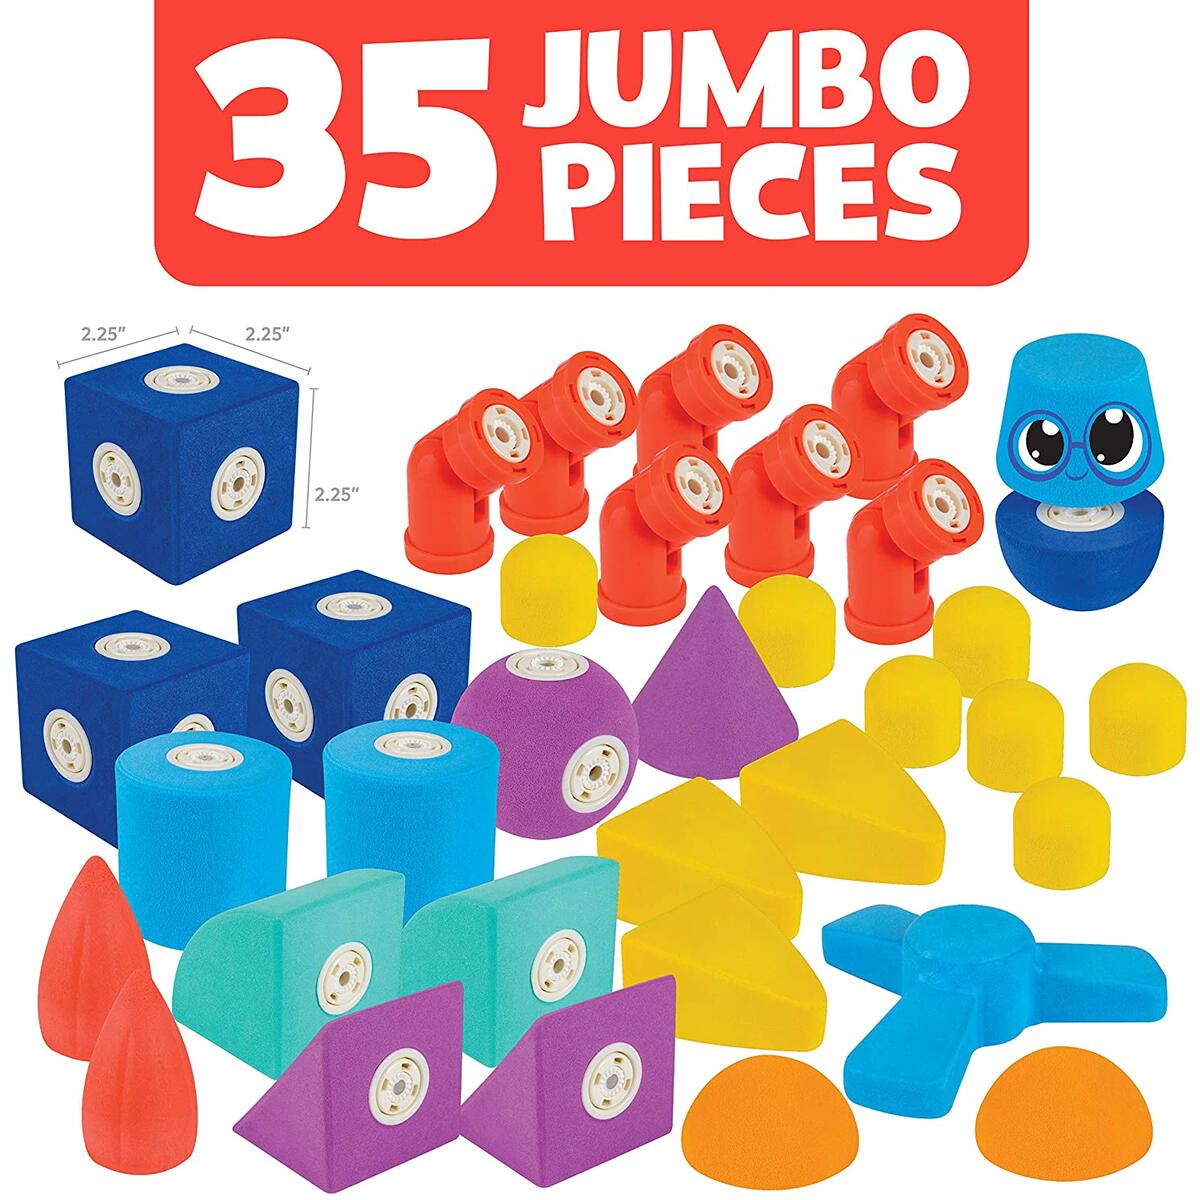 Blockaroo Magnetic Foam Building Blocks - STEM Construction Toys for Boys and Girls, Soft Foam Blocks Develop Early Learning Skills, the Ultimate Bath Toys for Toddlers & Kids - Windmill Set